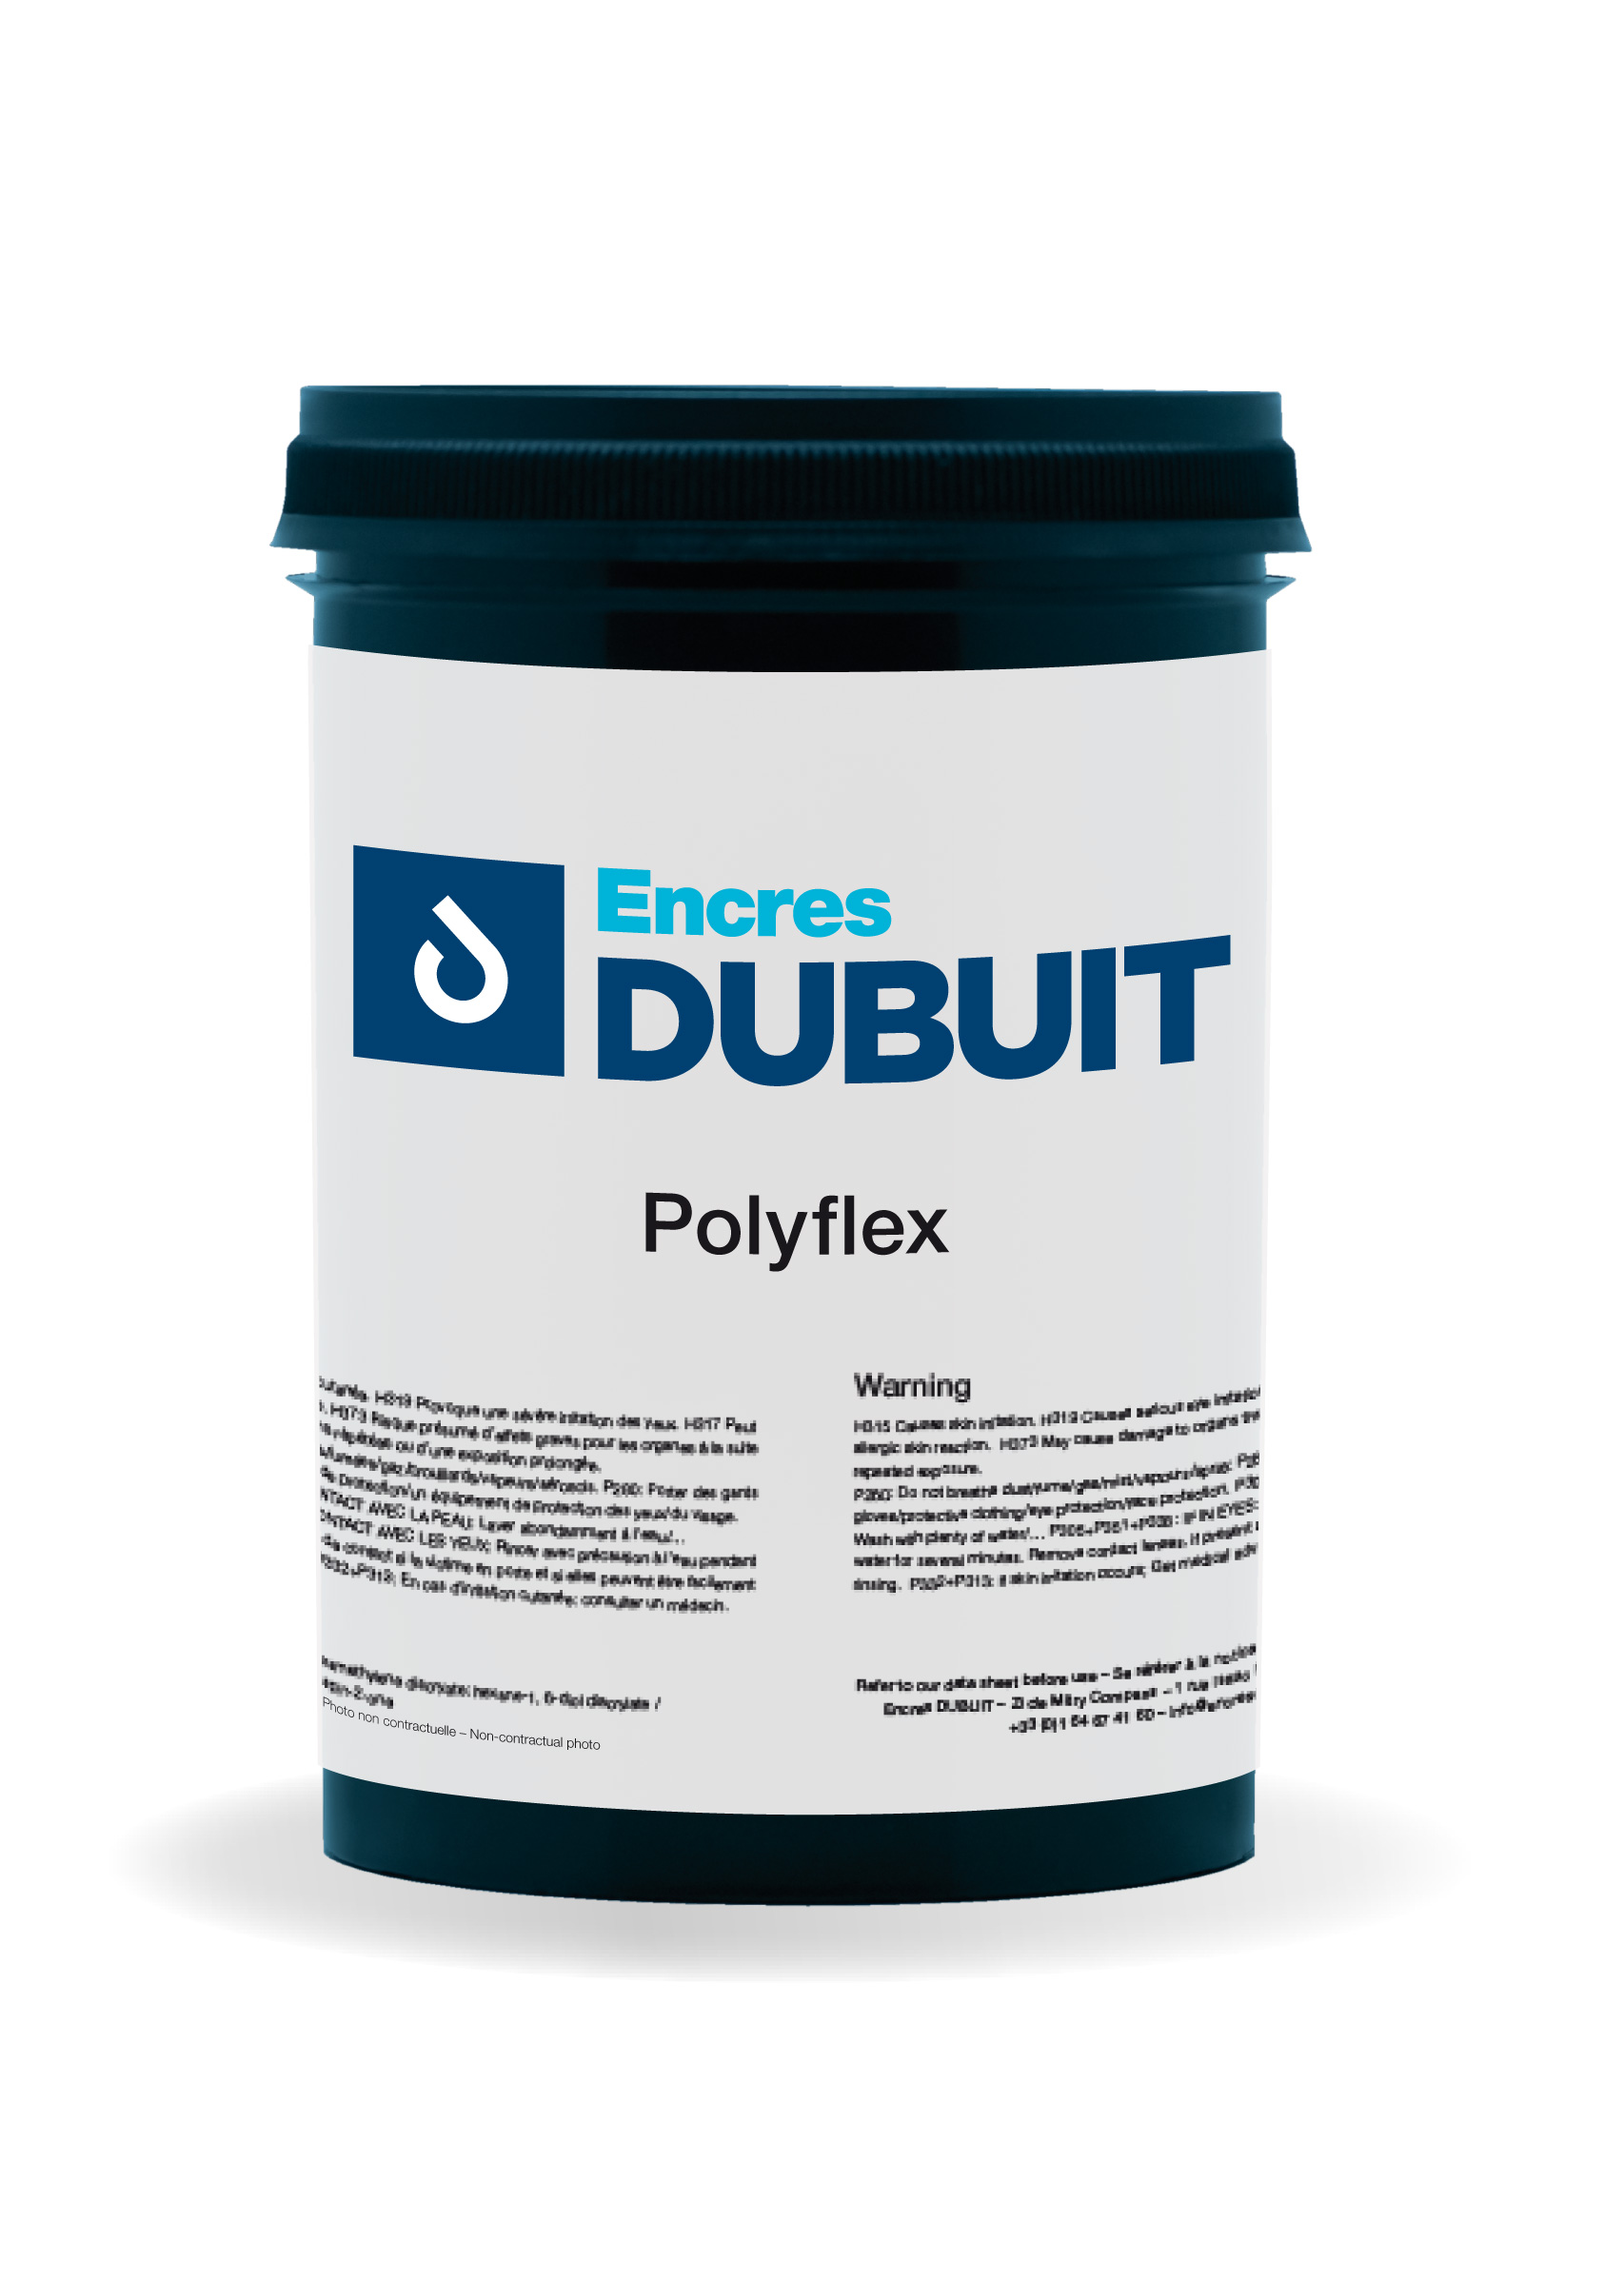 Serie Polyflex Encres DUBUIT UV Screen Printing Ink